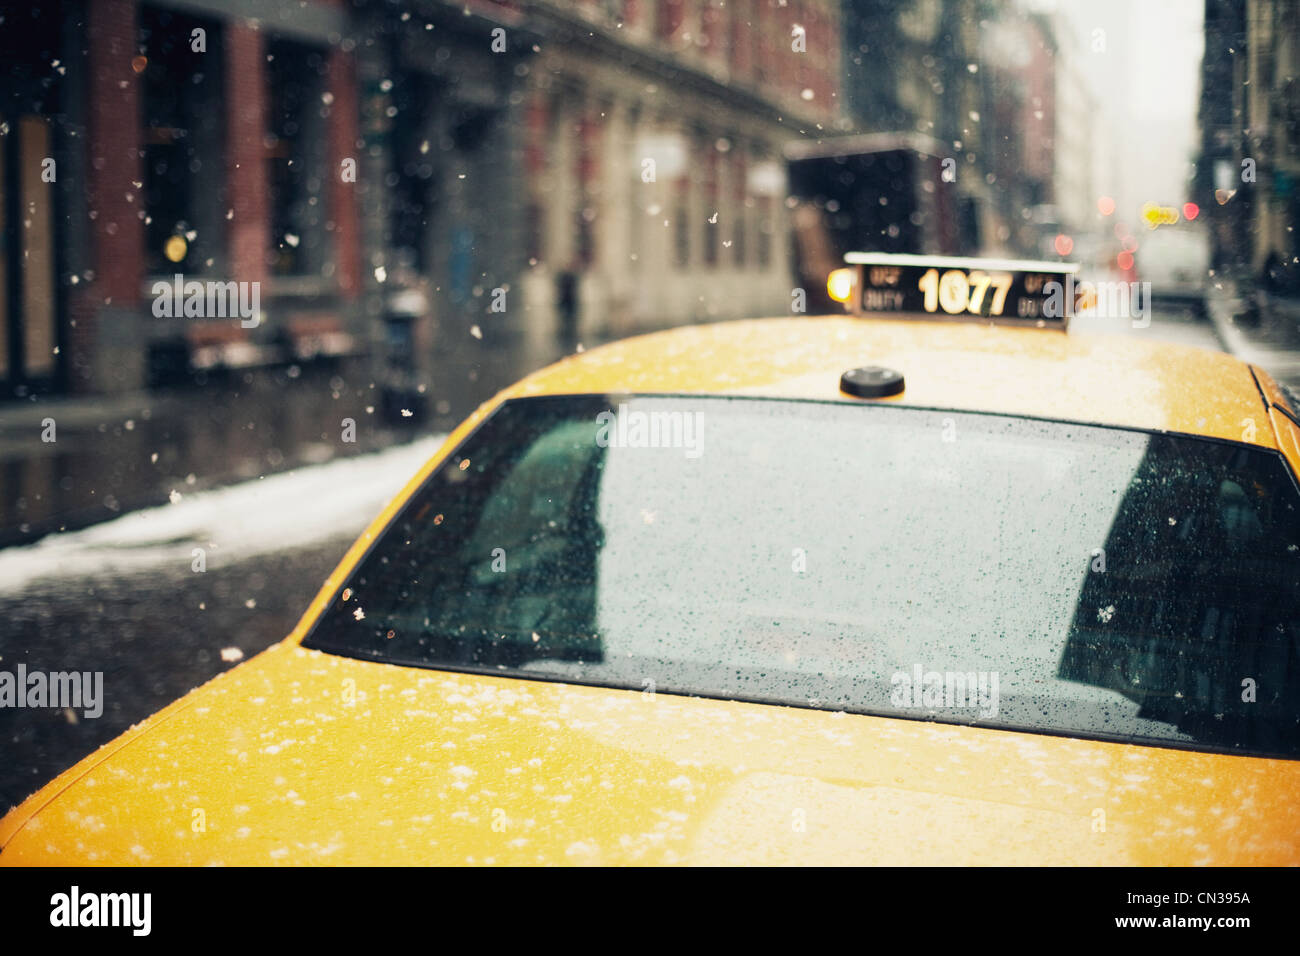 New York taxi in the snow - Stock Image